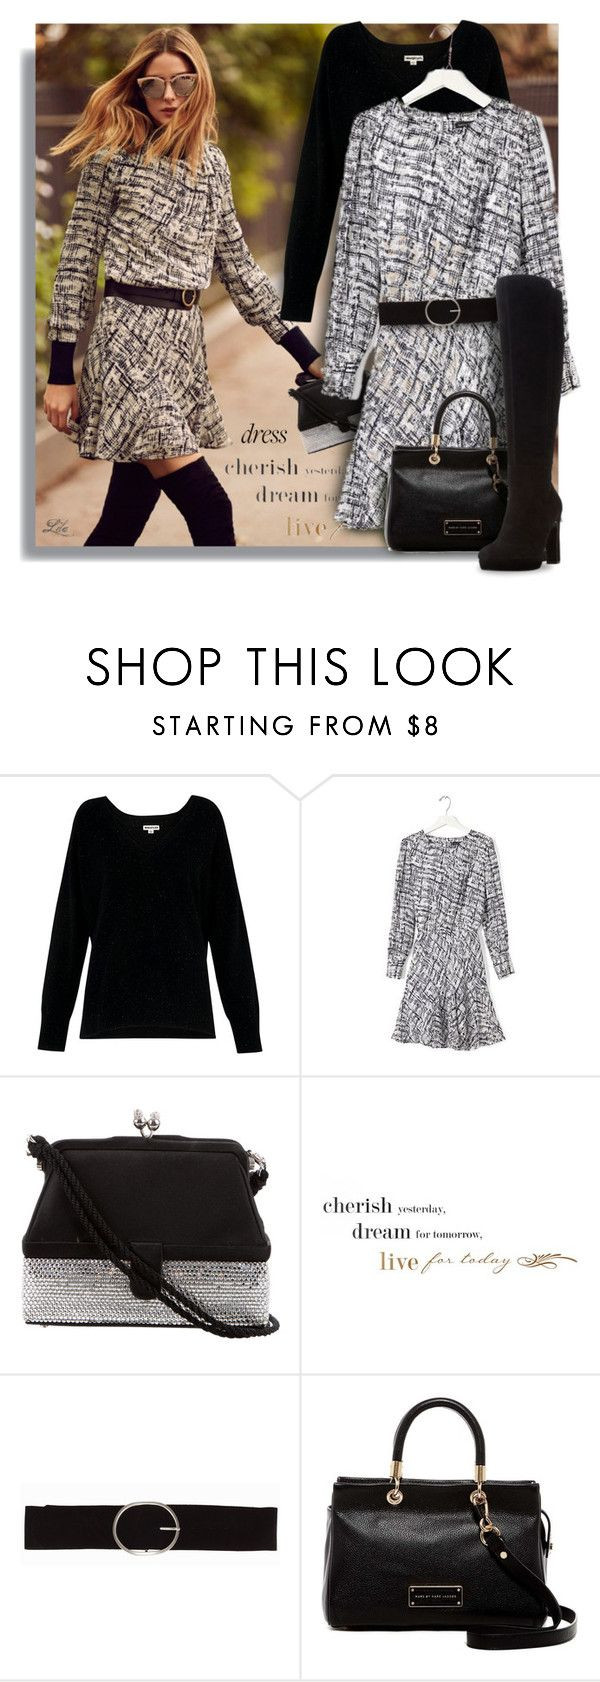 """Best Trend of 2016"" by breathing-style ❤ liked on Polyvore featuring Banana Republic, Whistles, Judith Leiber, WALL, Vero Moda, Marc by Marc Jacobs and Dune"